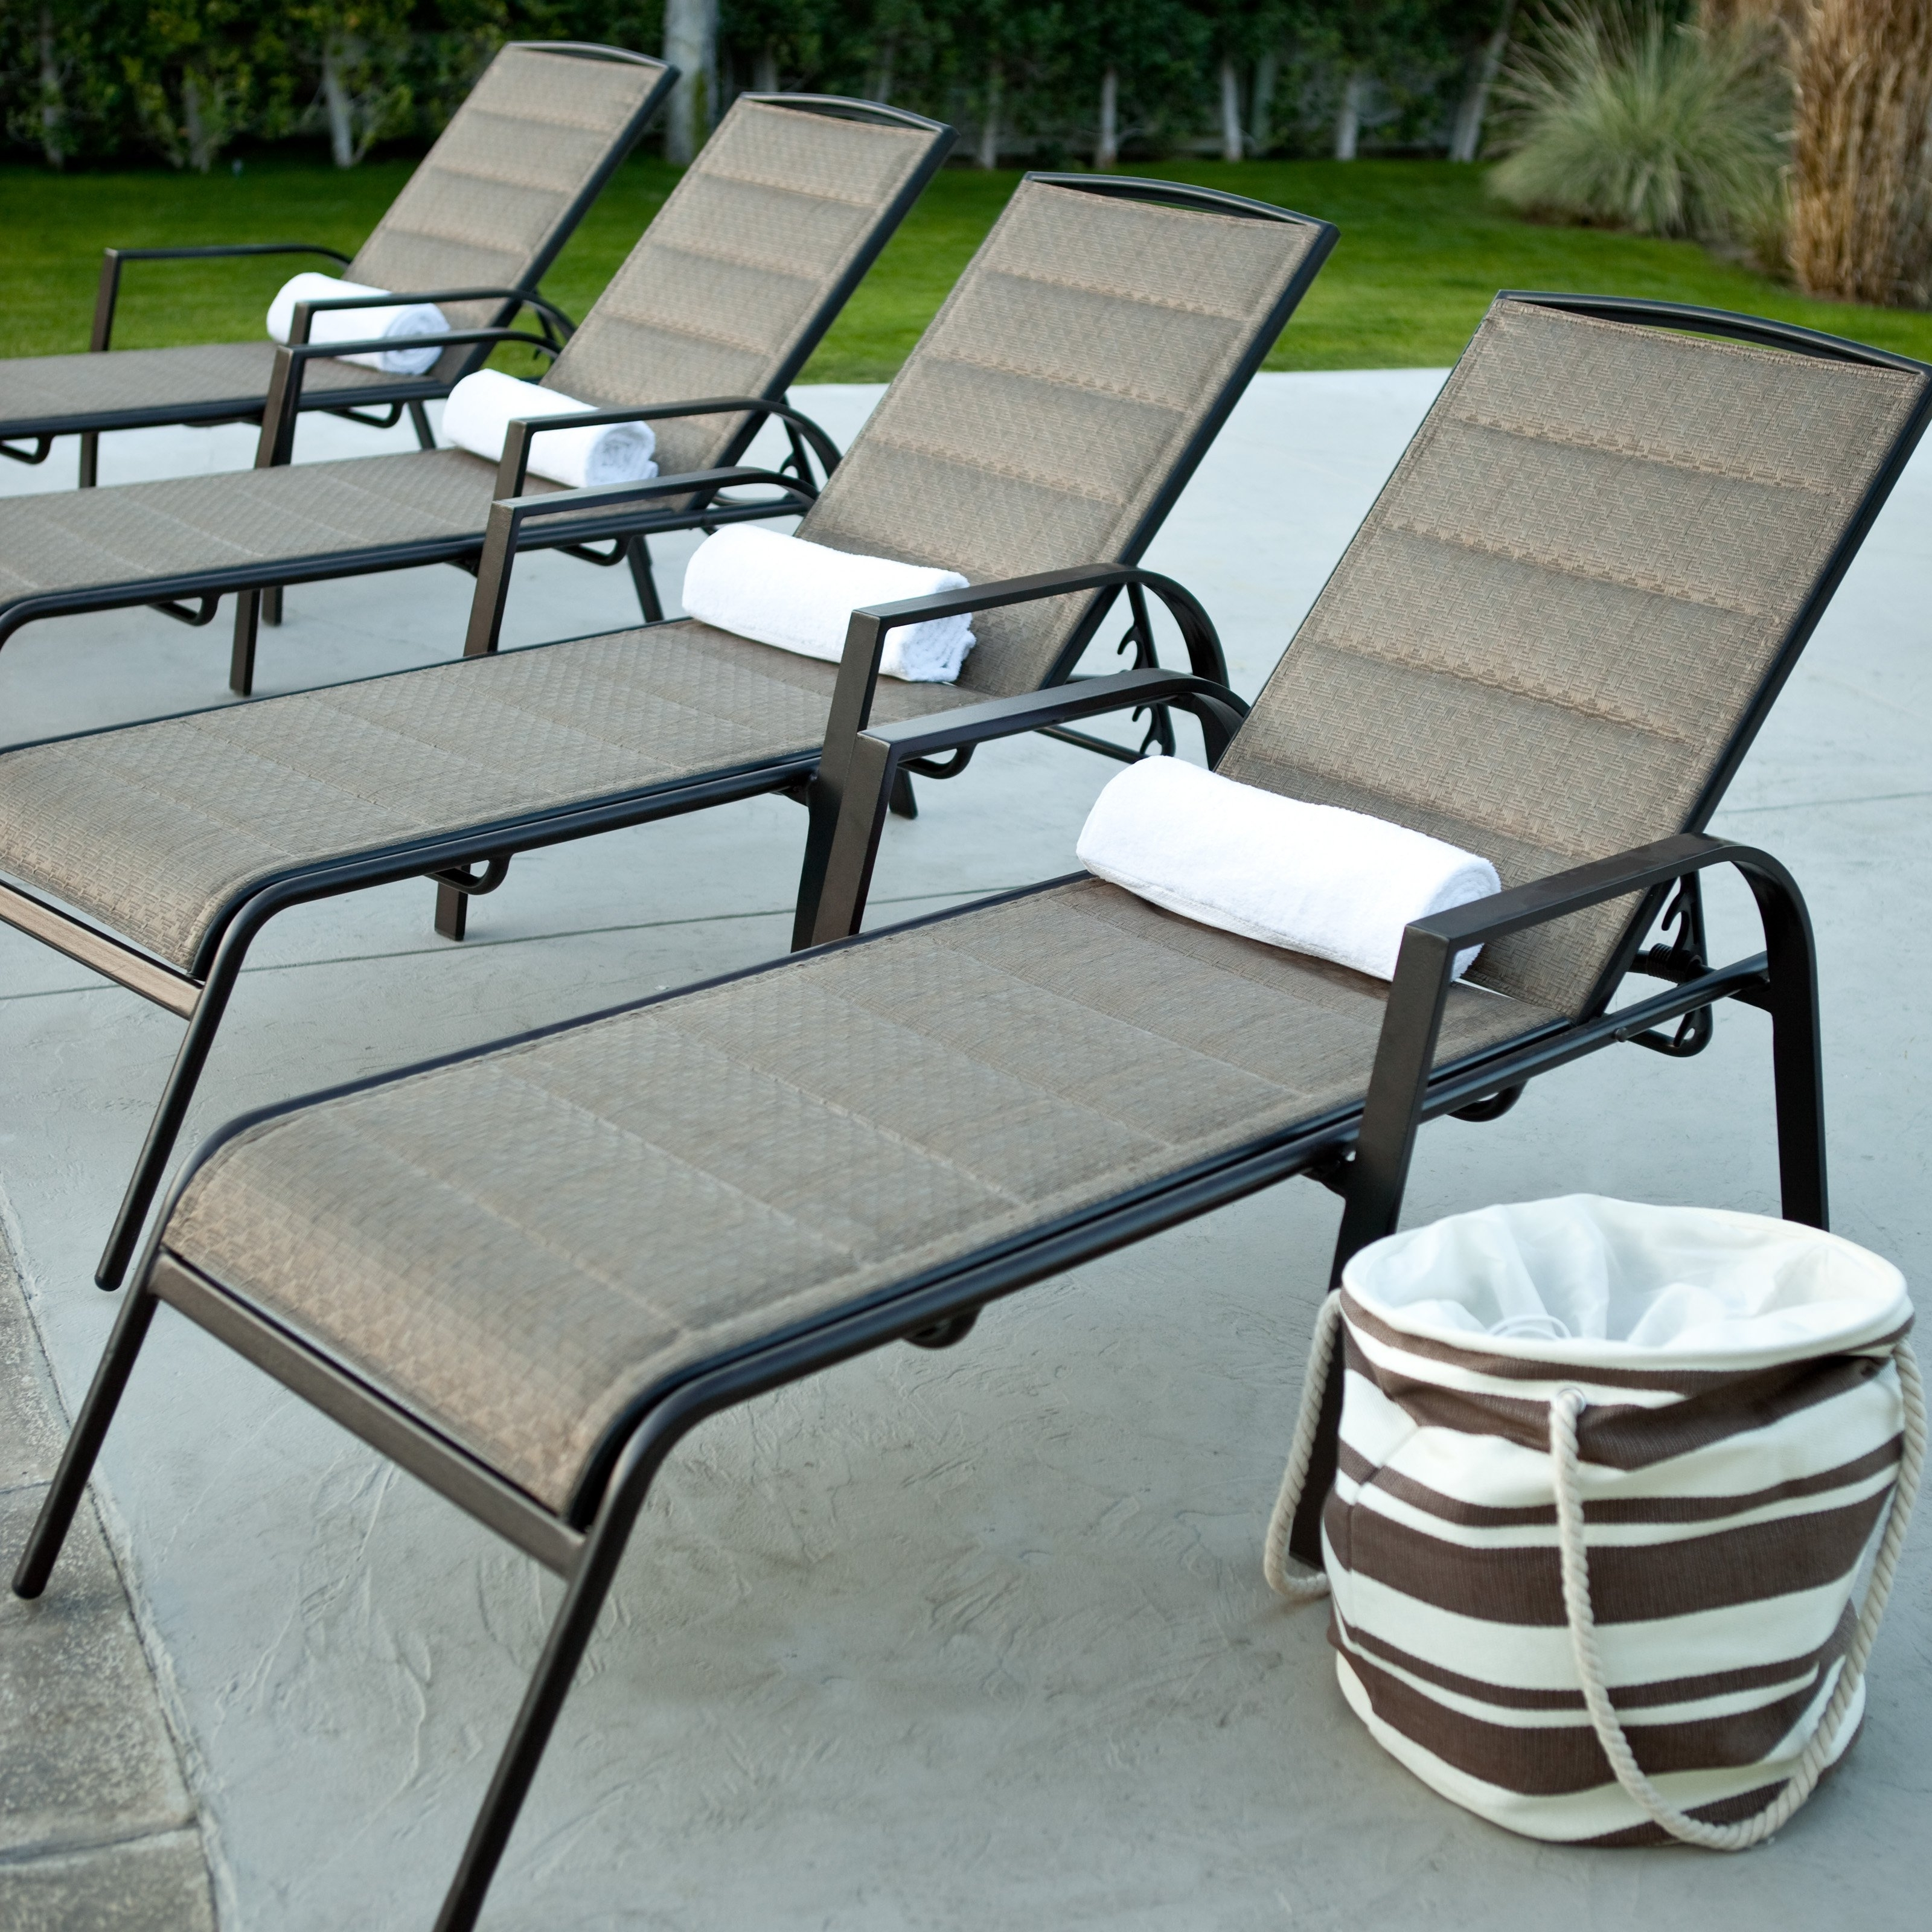 Black Chaise Lounge Outdoor Chairs Pertaining To Most Current Furniture : Cozy Aluminum Outdoor Aluminum Furniture With Black (View 13 of 15)